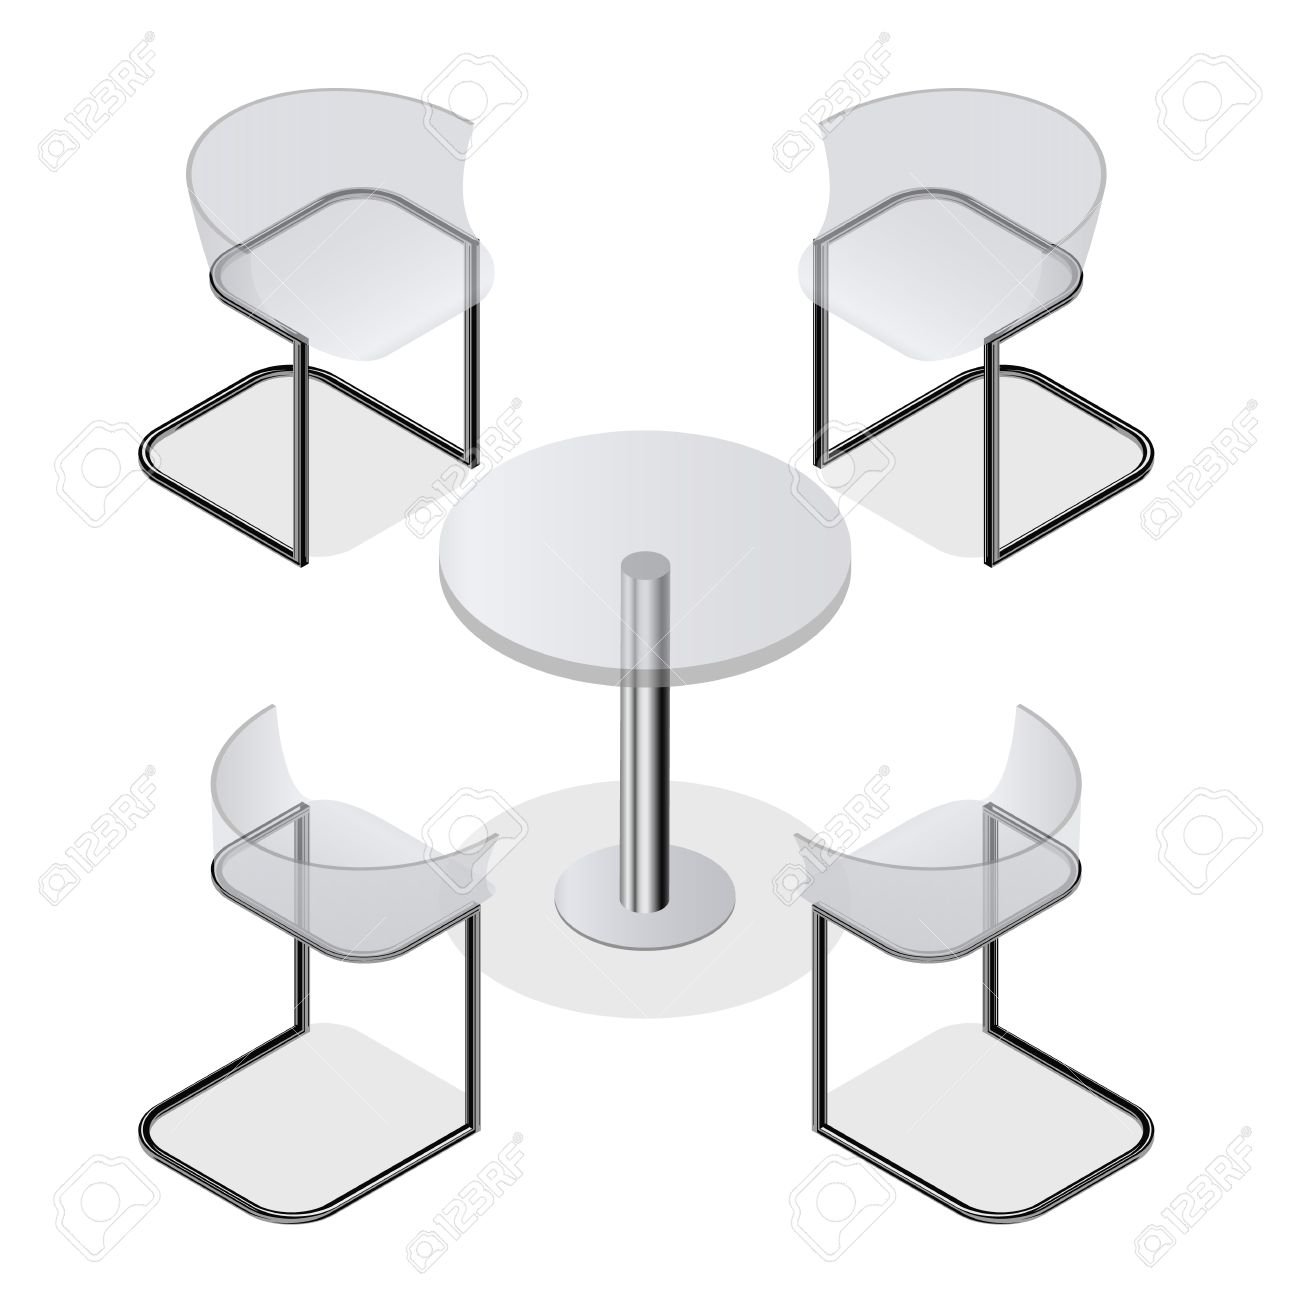 round table clipart black and white. set of transparent isometric chairs and a round table for the kitchen interior, room, clipart black white